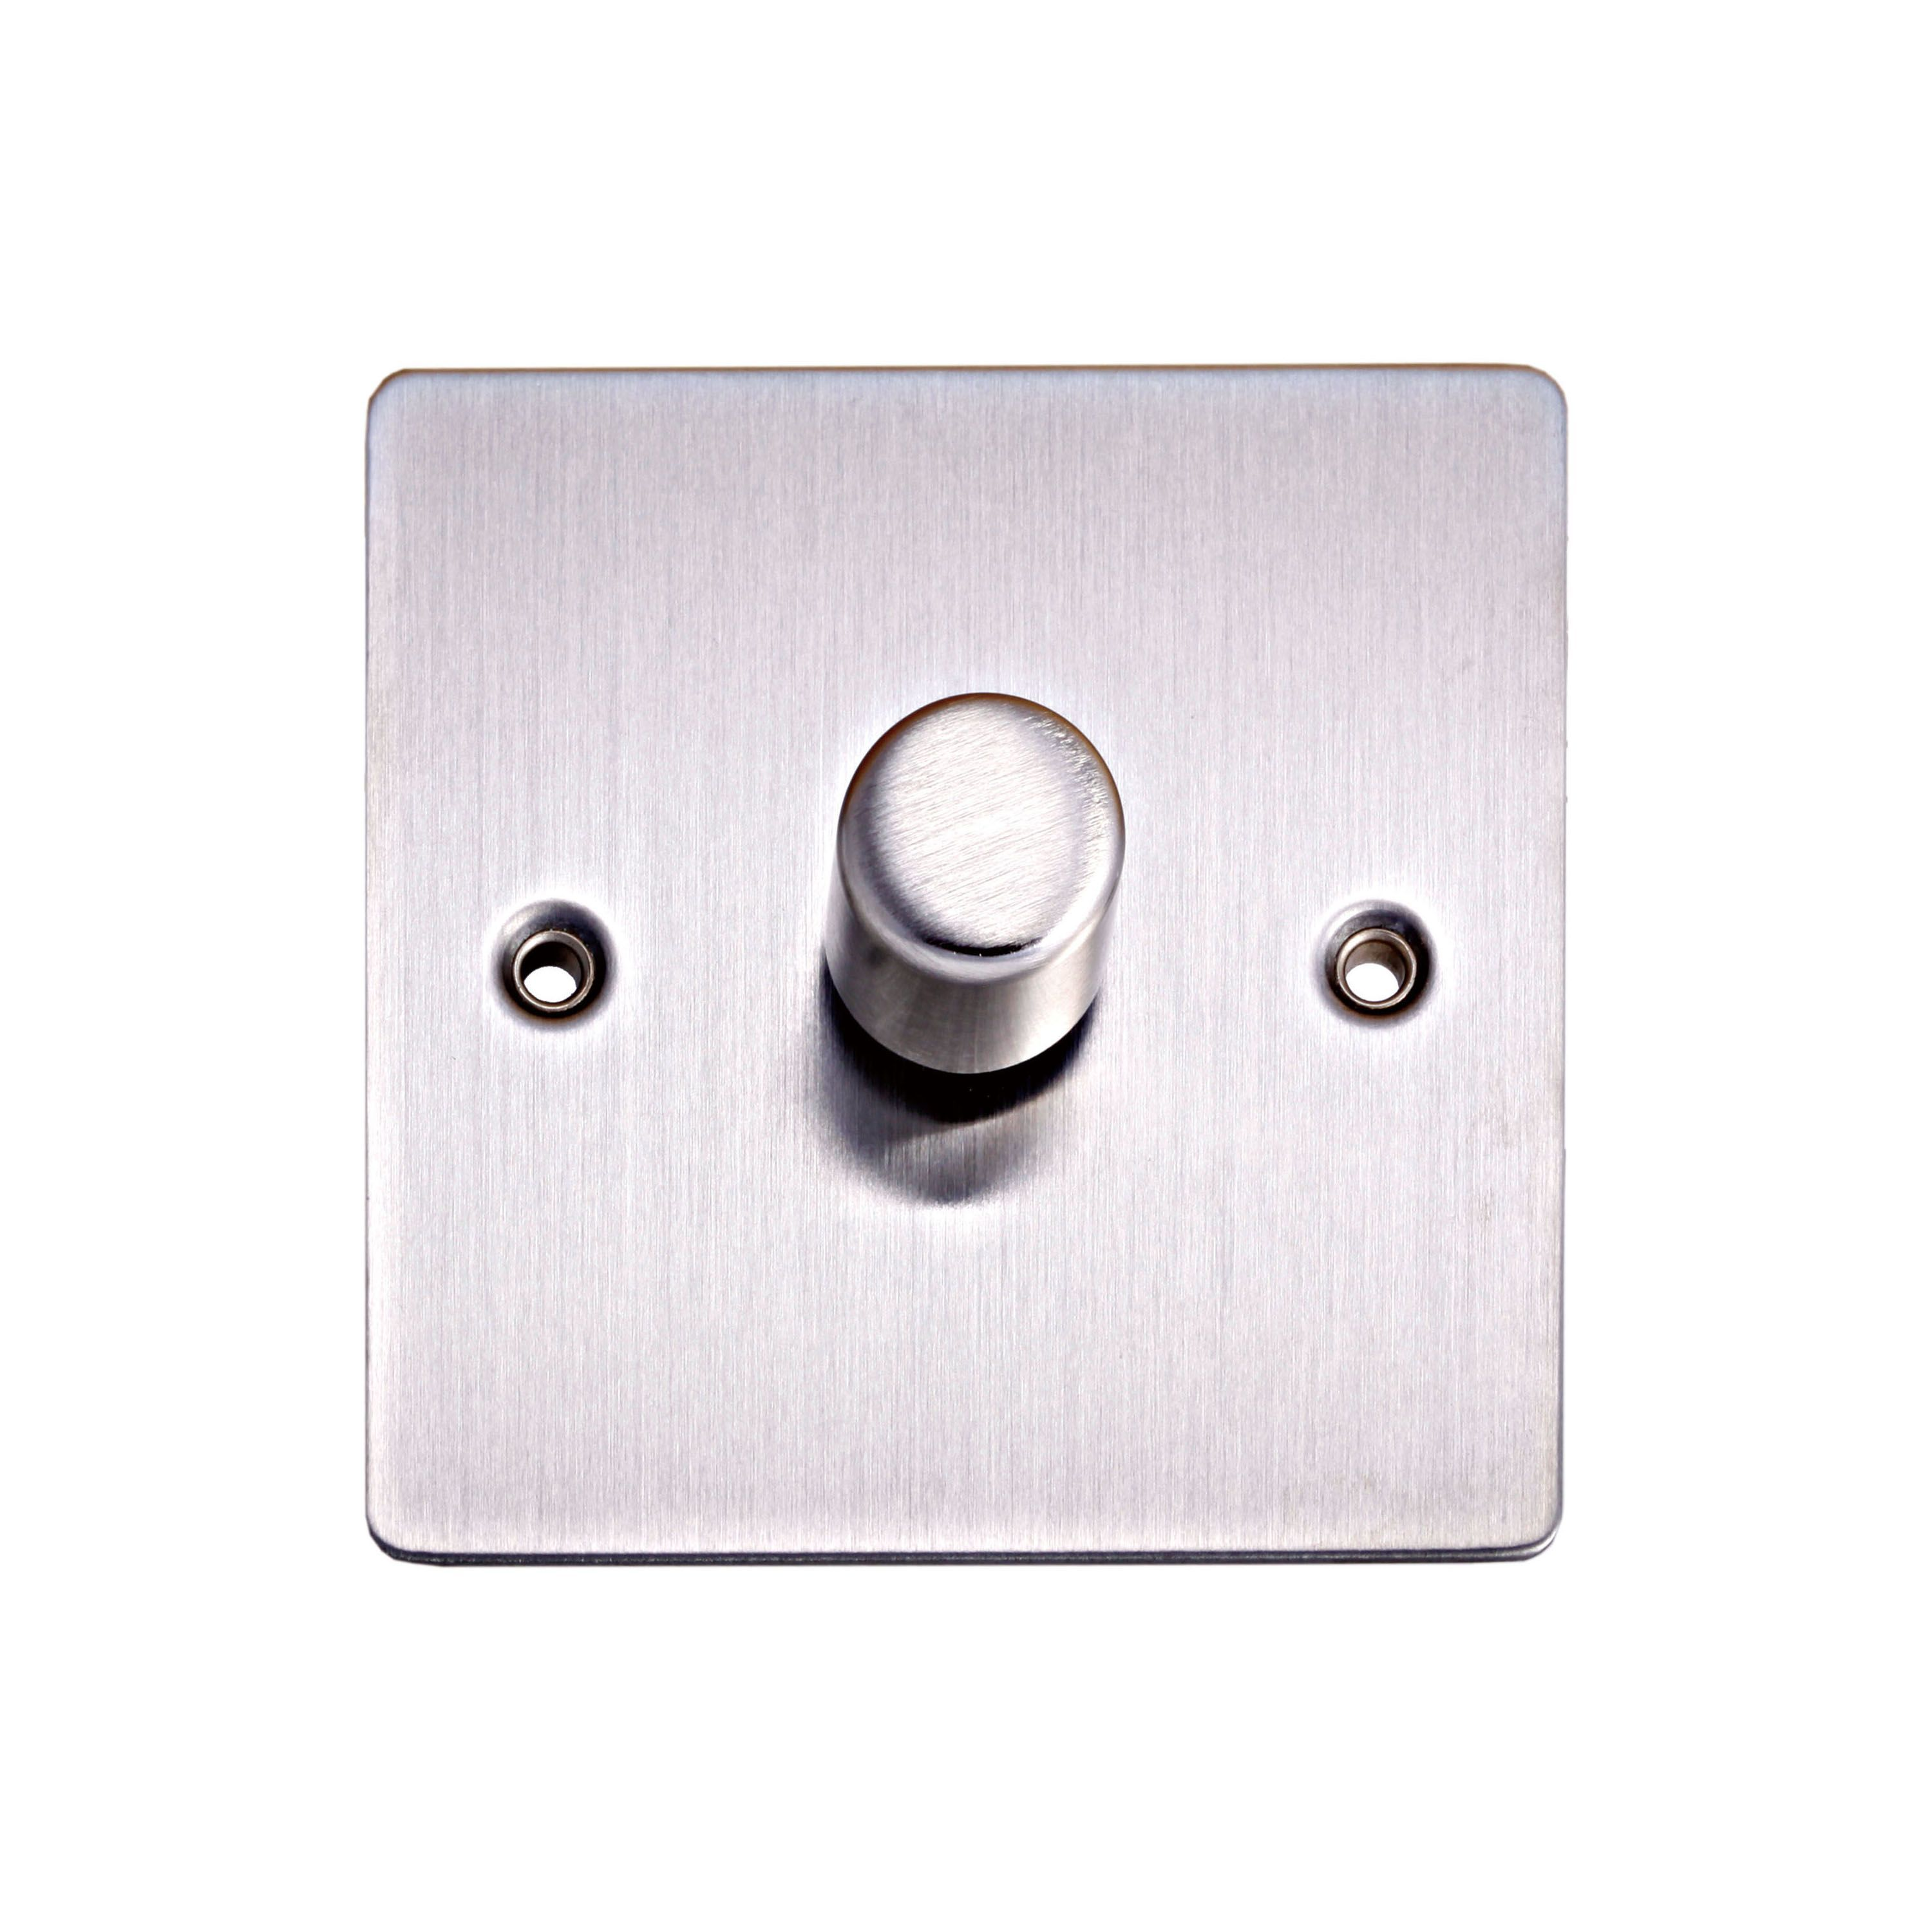 holder 2 way single brushed steel dimmer switch departments diy at b q. Black Bedroom Furniture Sets. Home Design Ideas